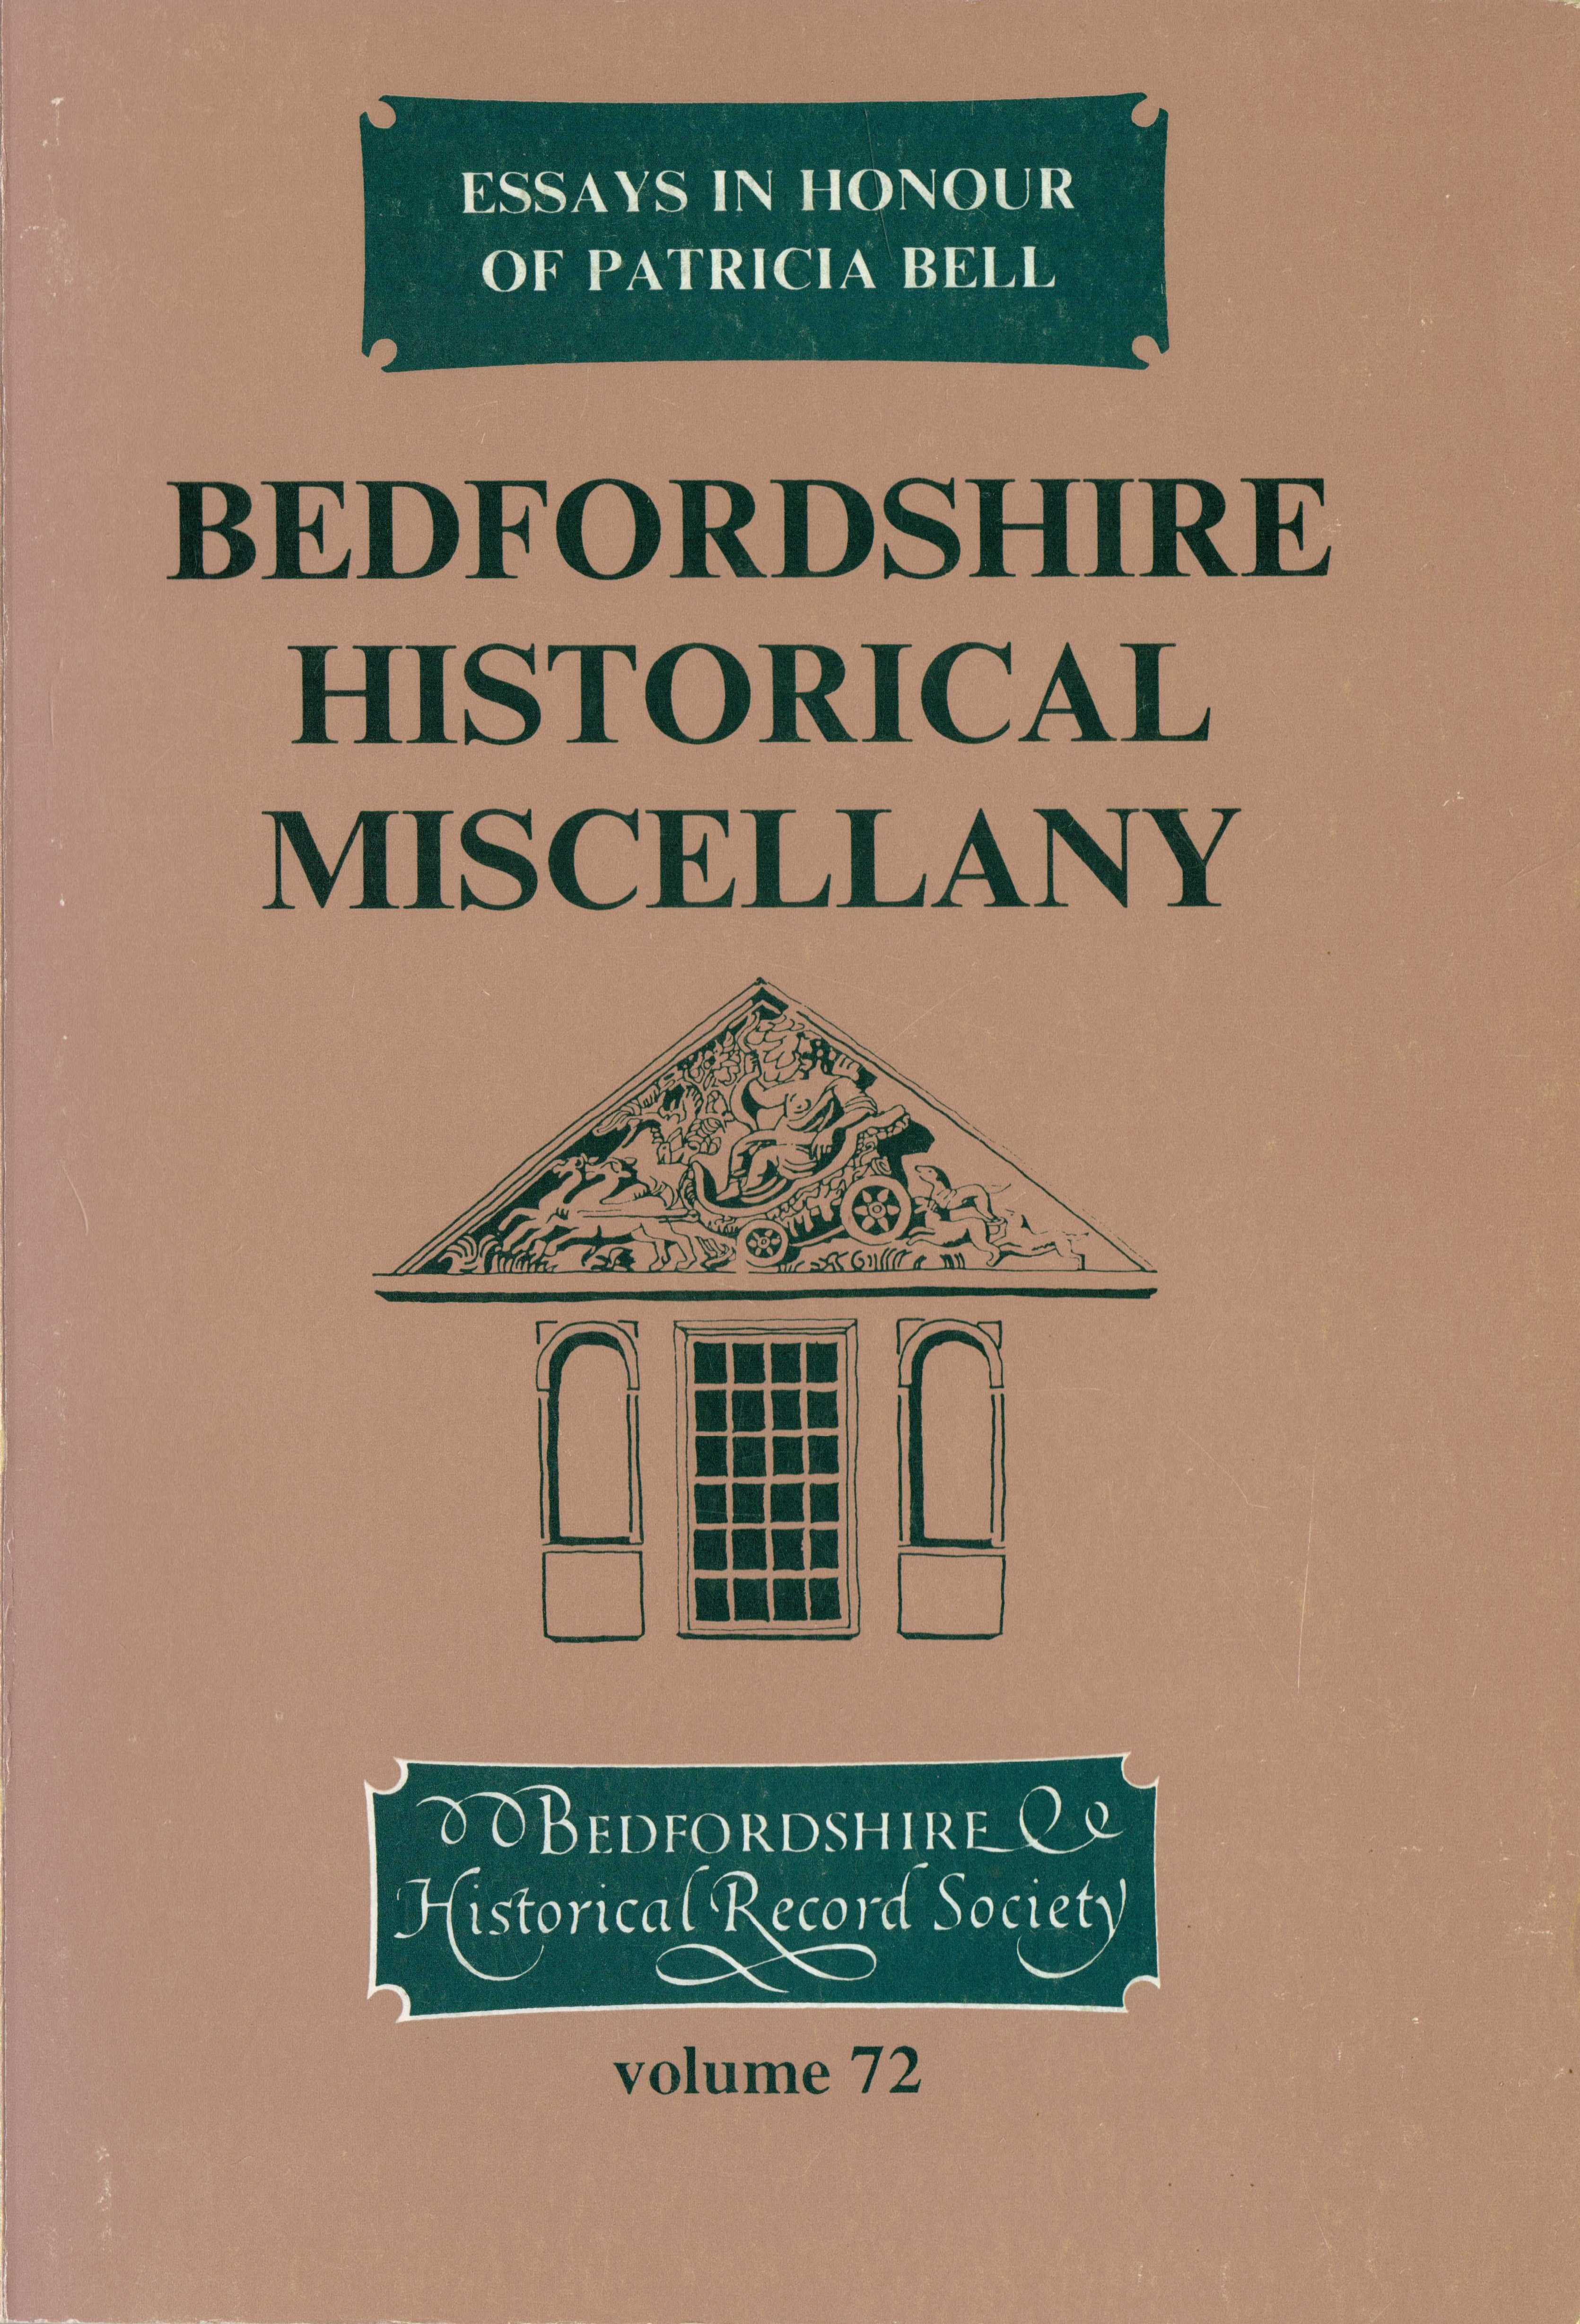 Bedfordshire historical miscellany